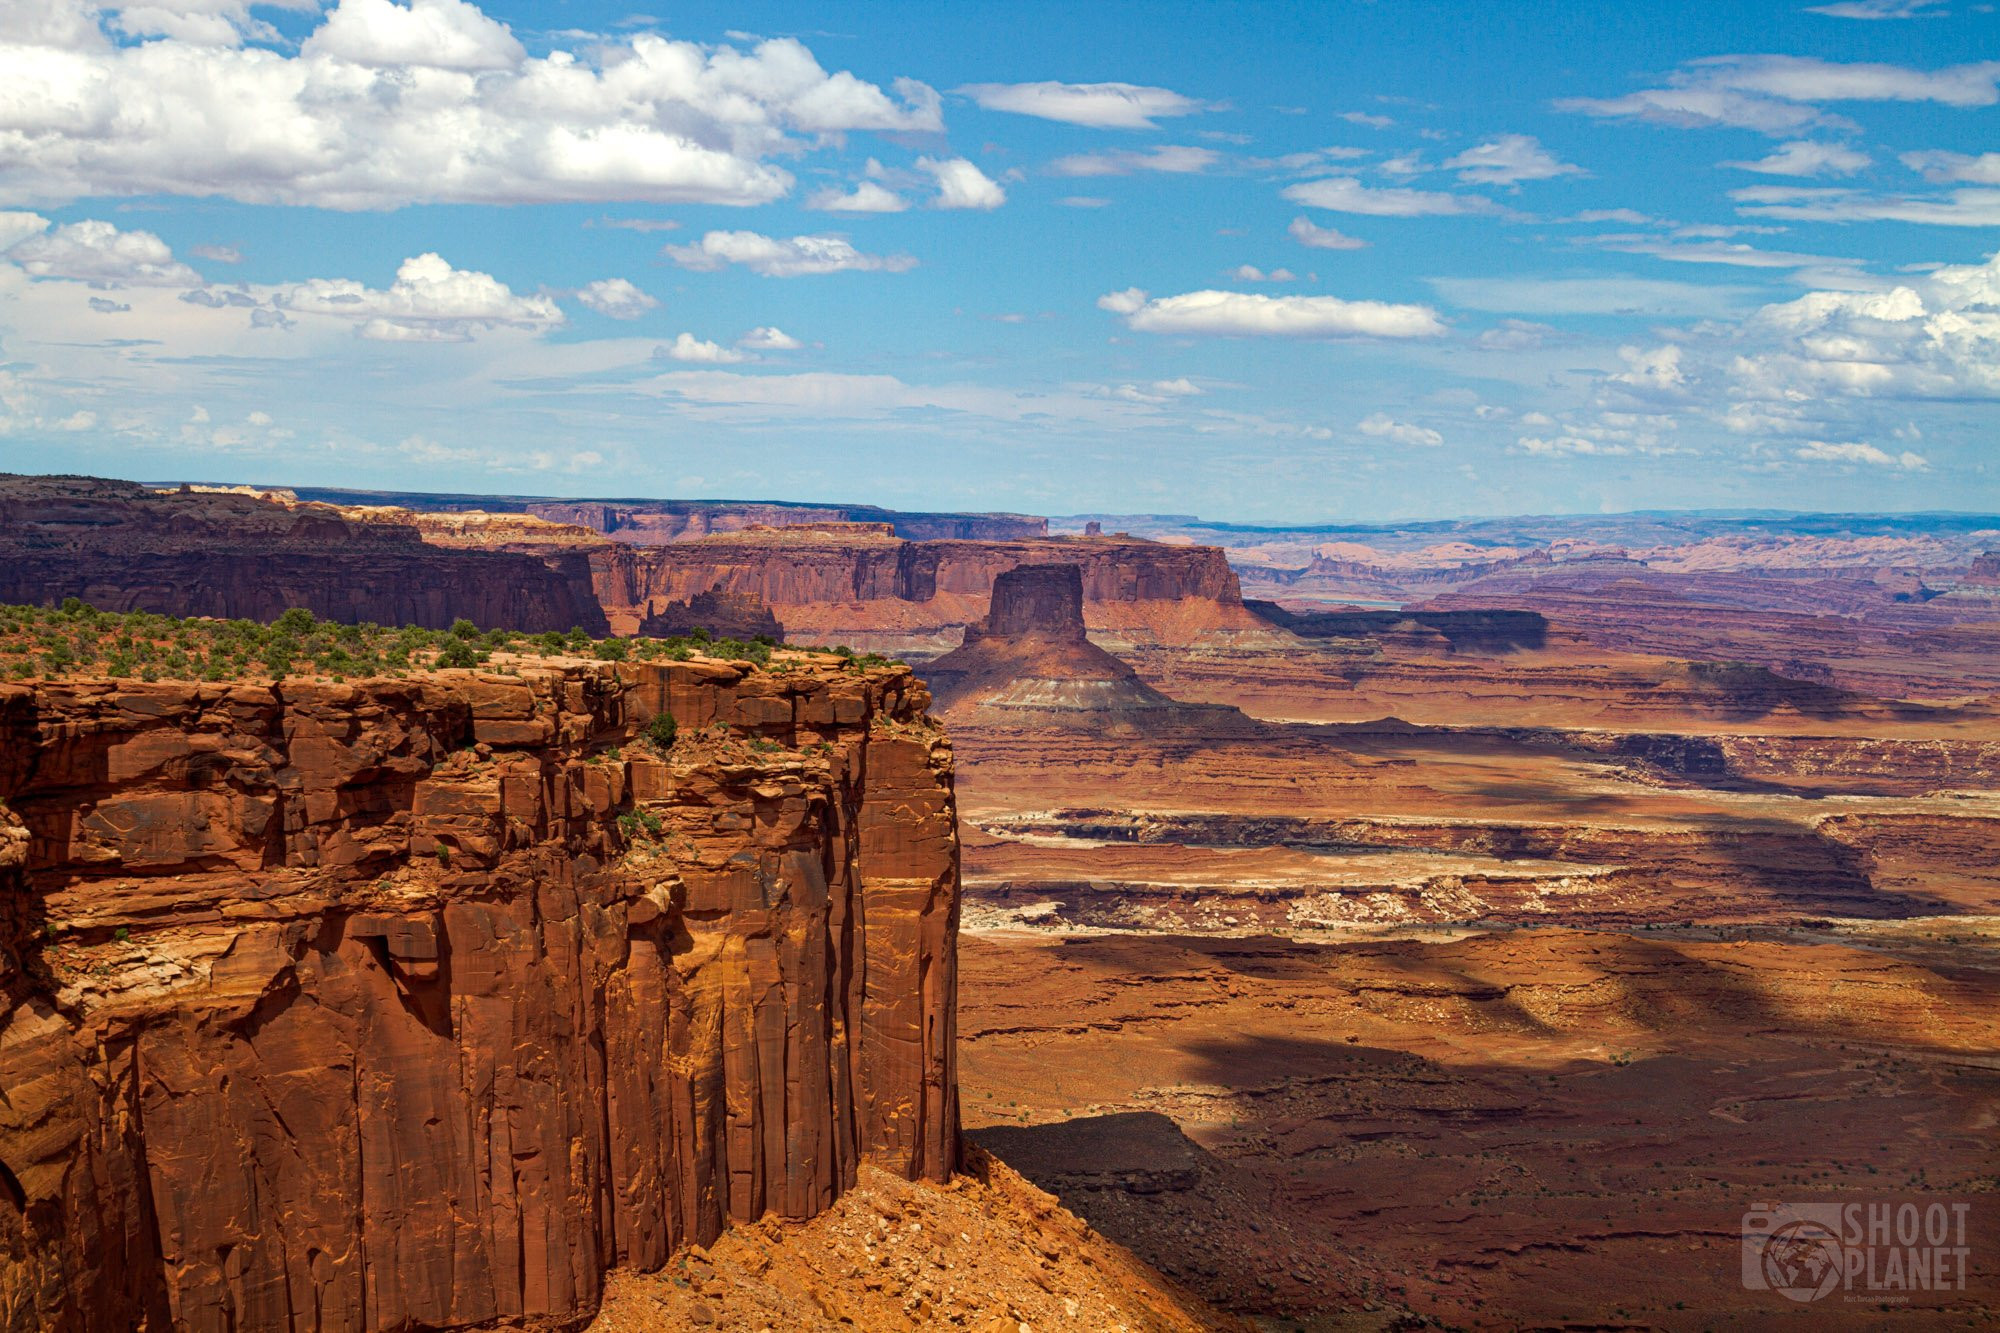 Red cliffs in Canyonlands National Park, Utah